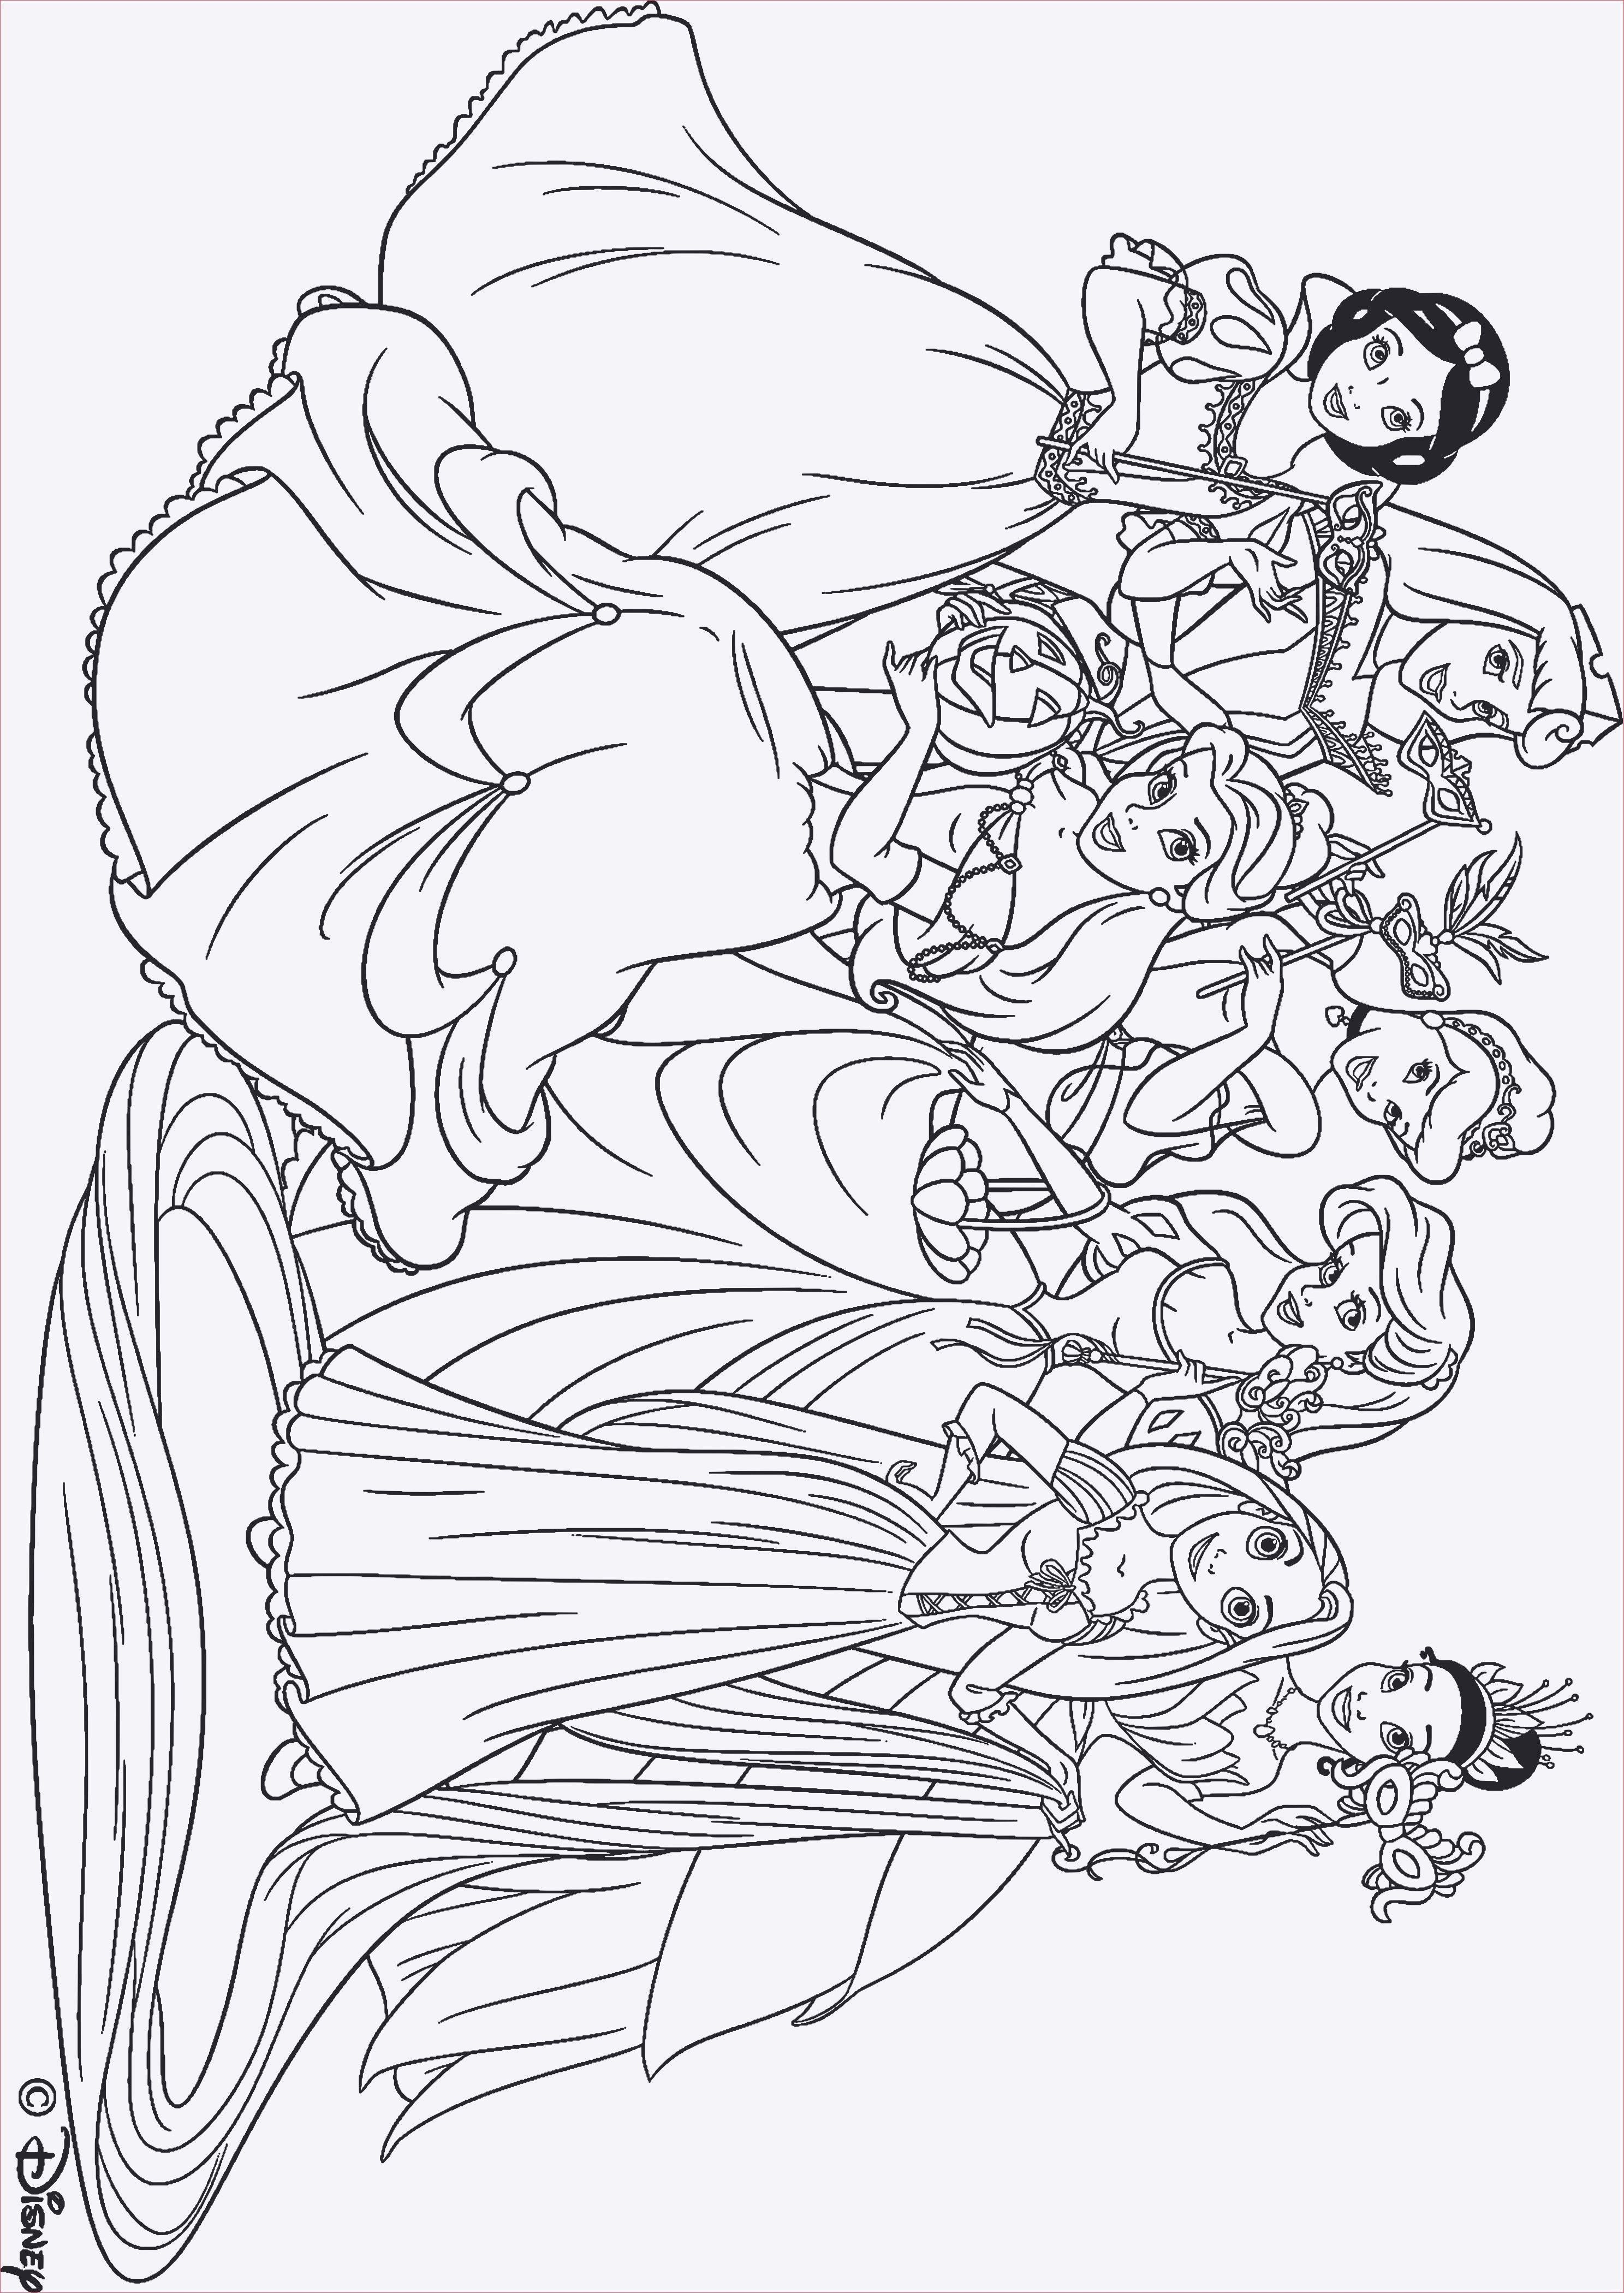 57 Fresh Coloring Pages Disney Vaiana Collection Collection Coloring Disney Fresh Pages Vaiana In 2020 Coloring Books Disney Coloring Pages Coloring Pages